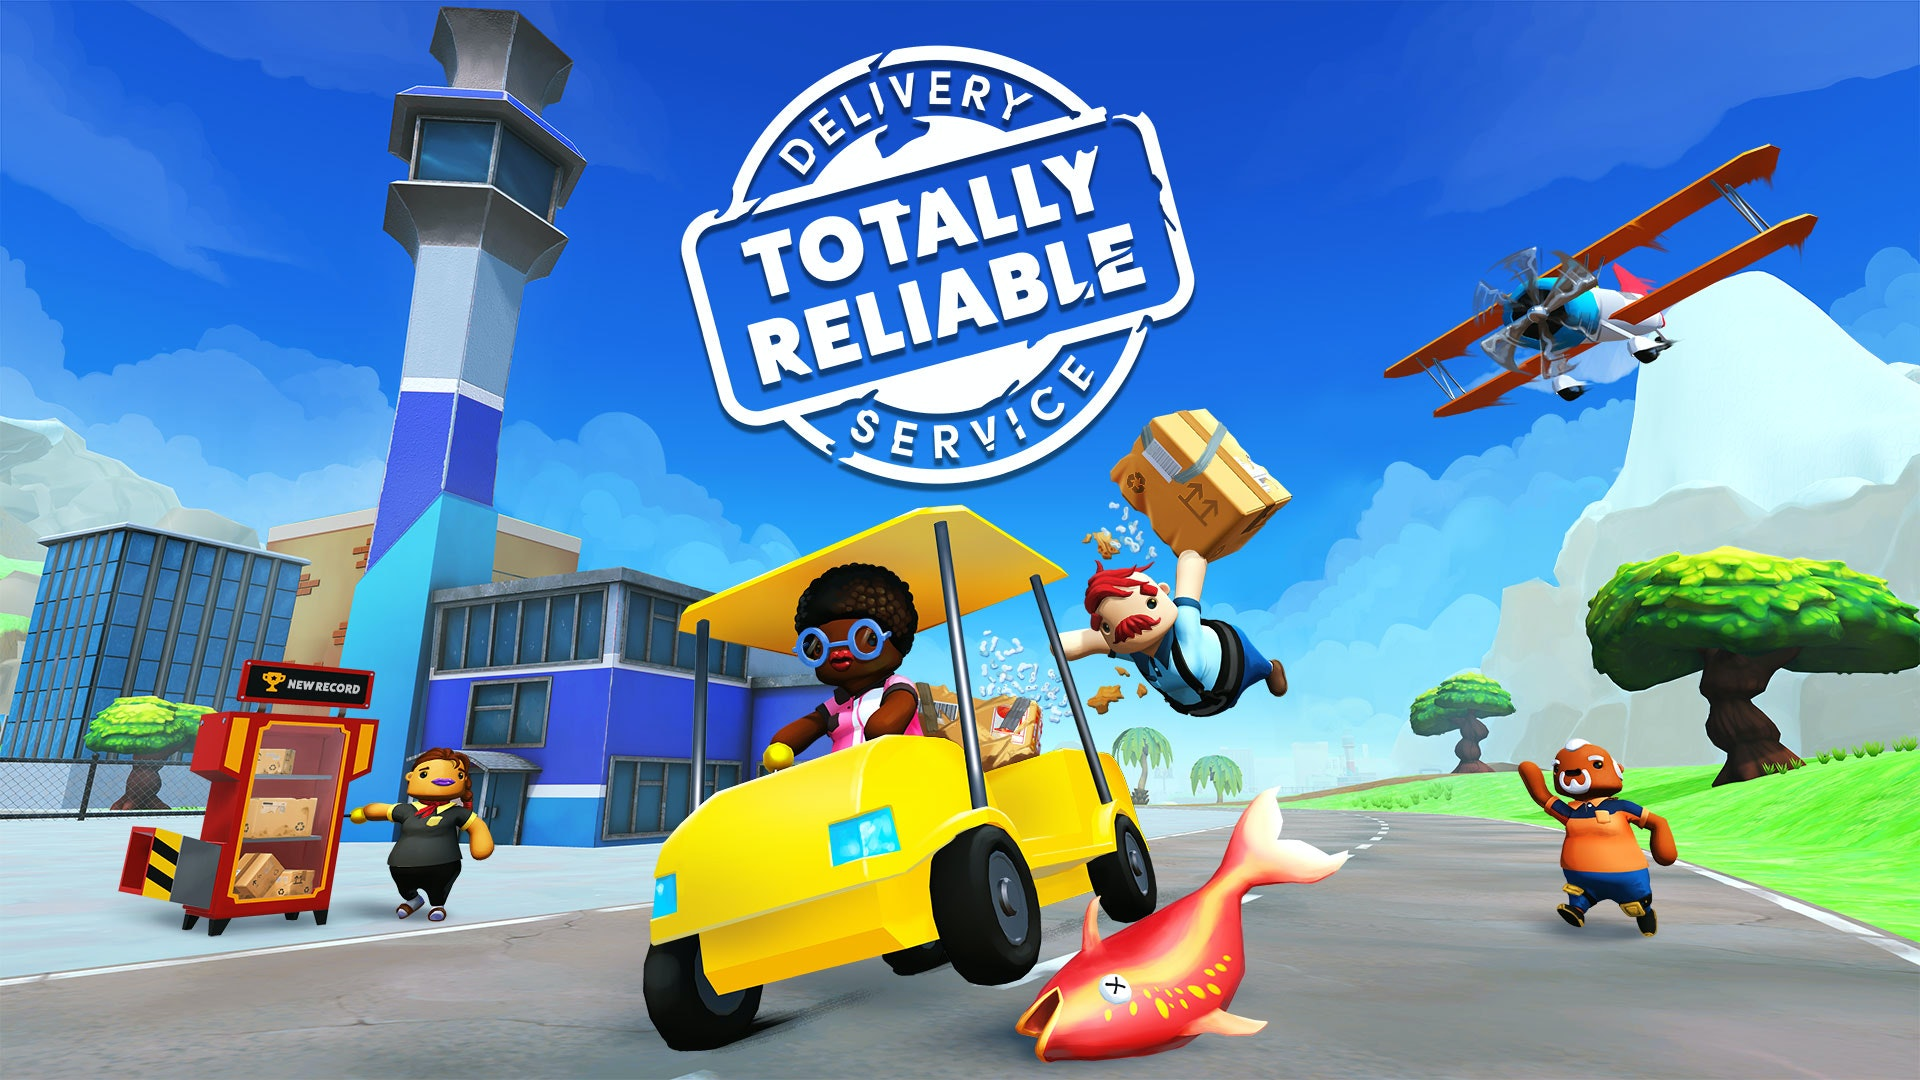 Totally Reliant Delivery Service - game image